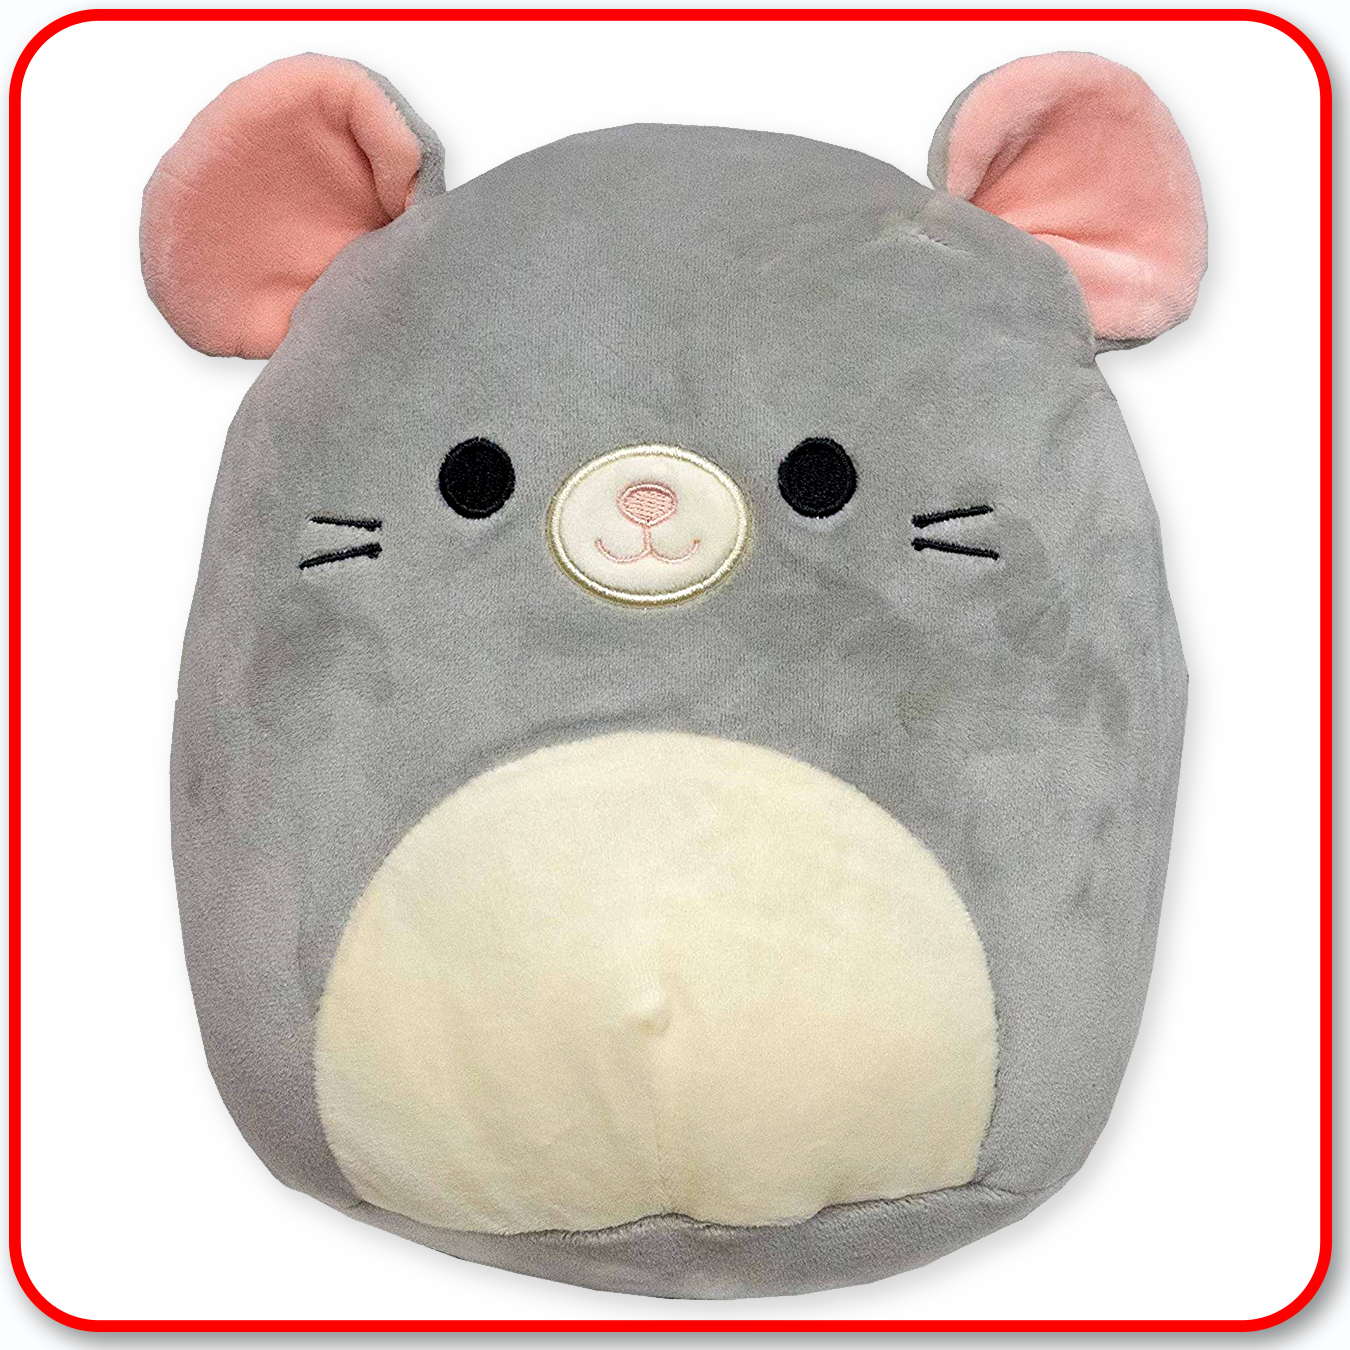 "Squishmallows - 8"" Misty the Mouse"